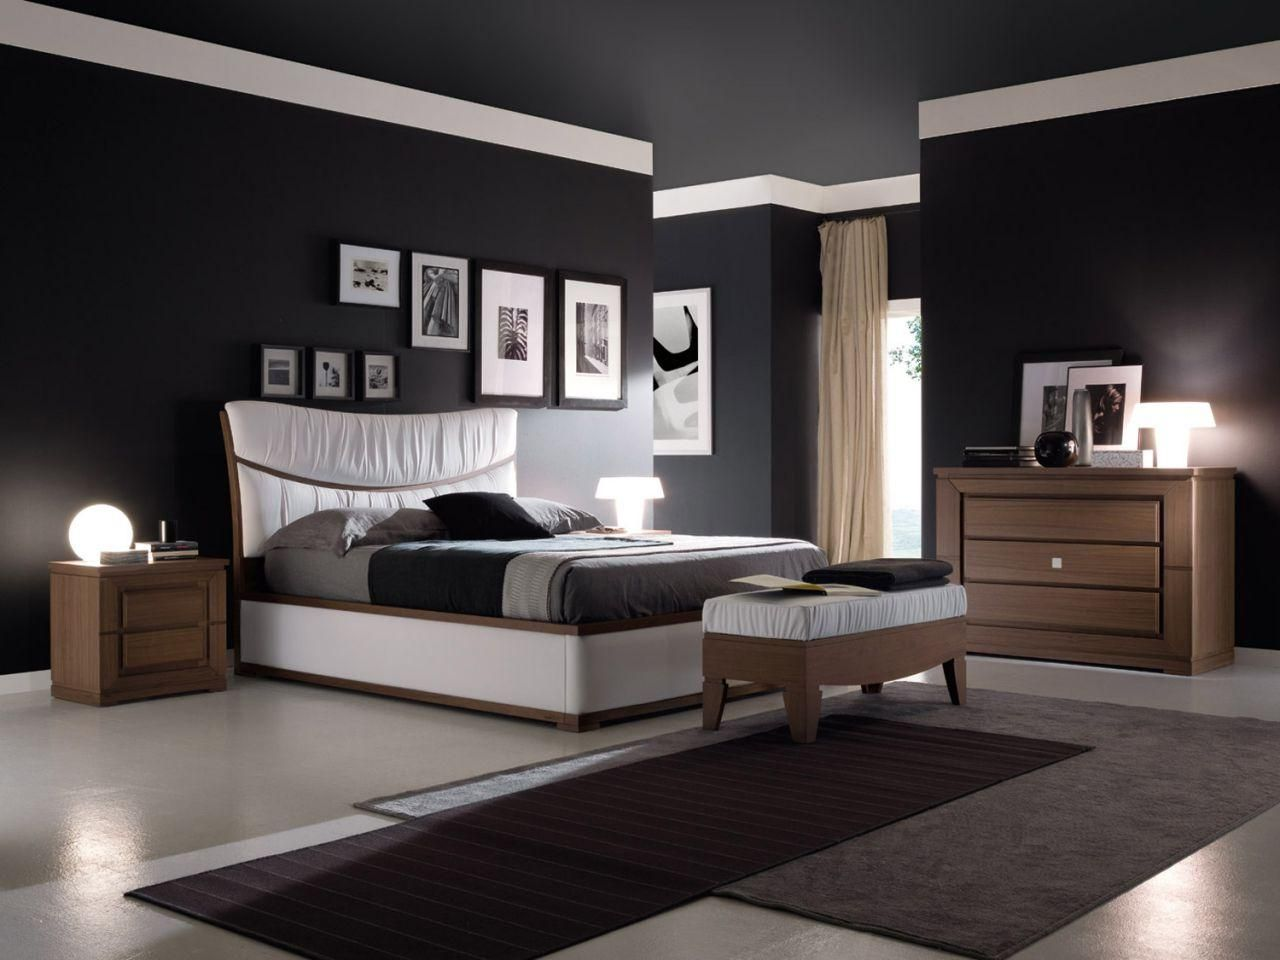 Modern Black Wall Ideas For Your Home 15 White Bedroom Decor Black Walls Living Room Black Walls Bedroom